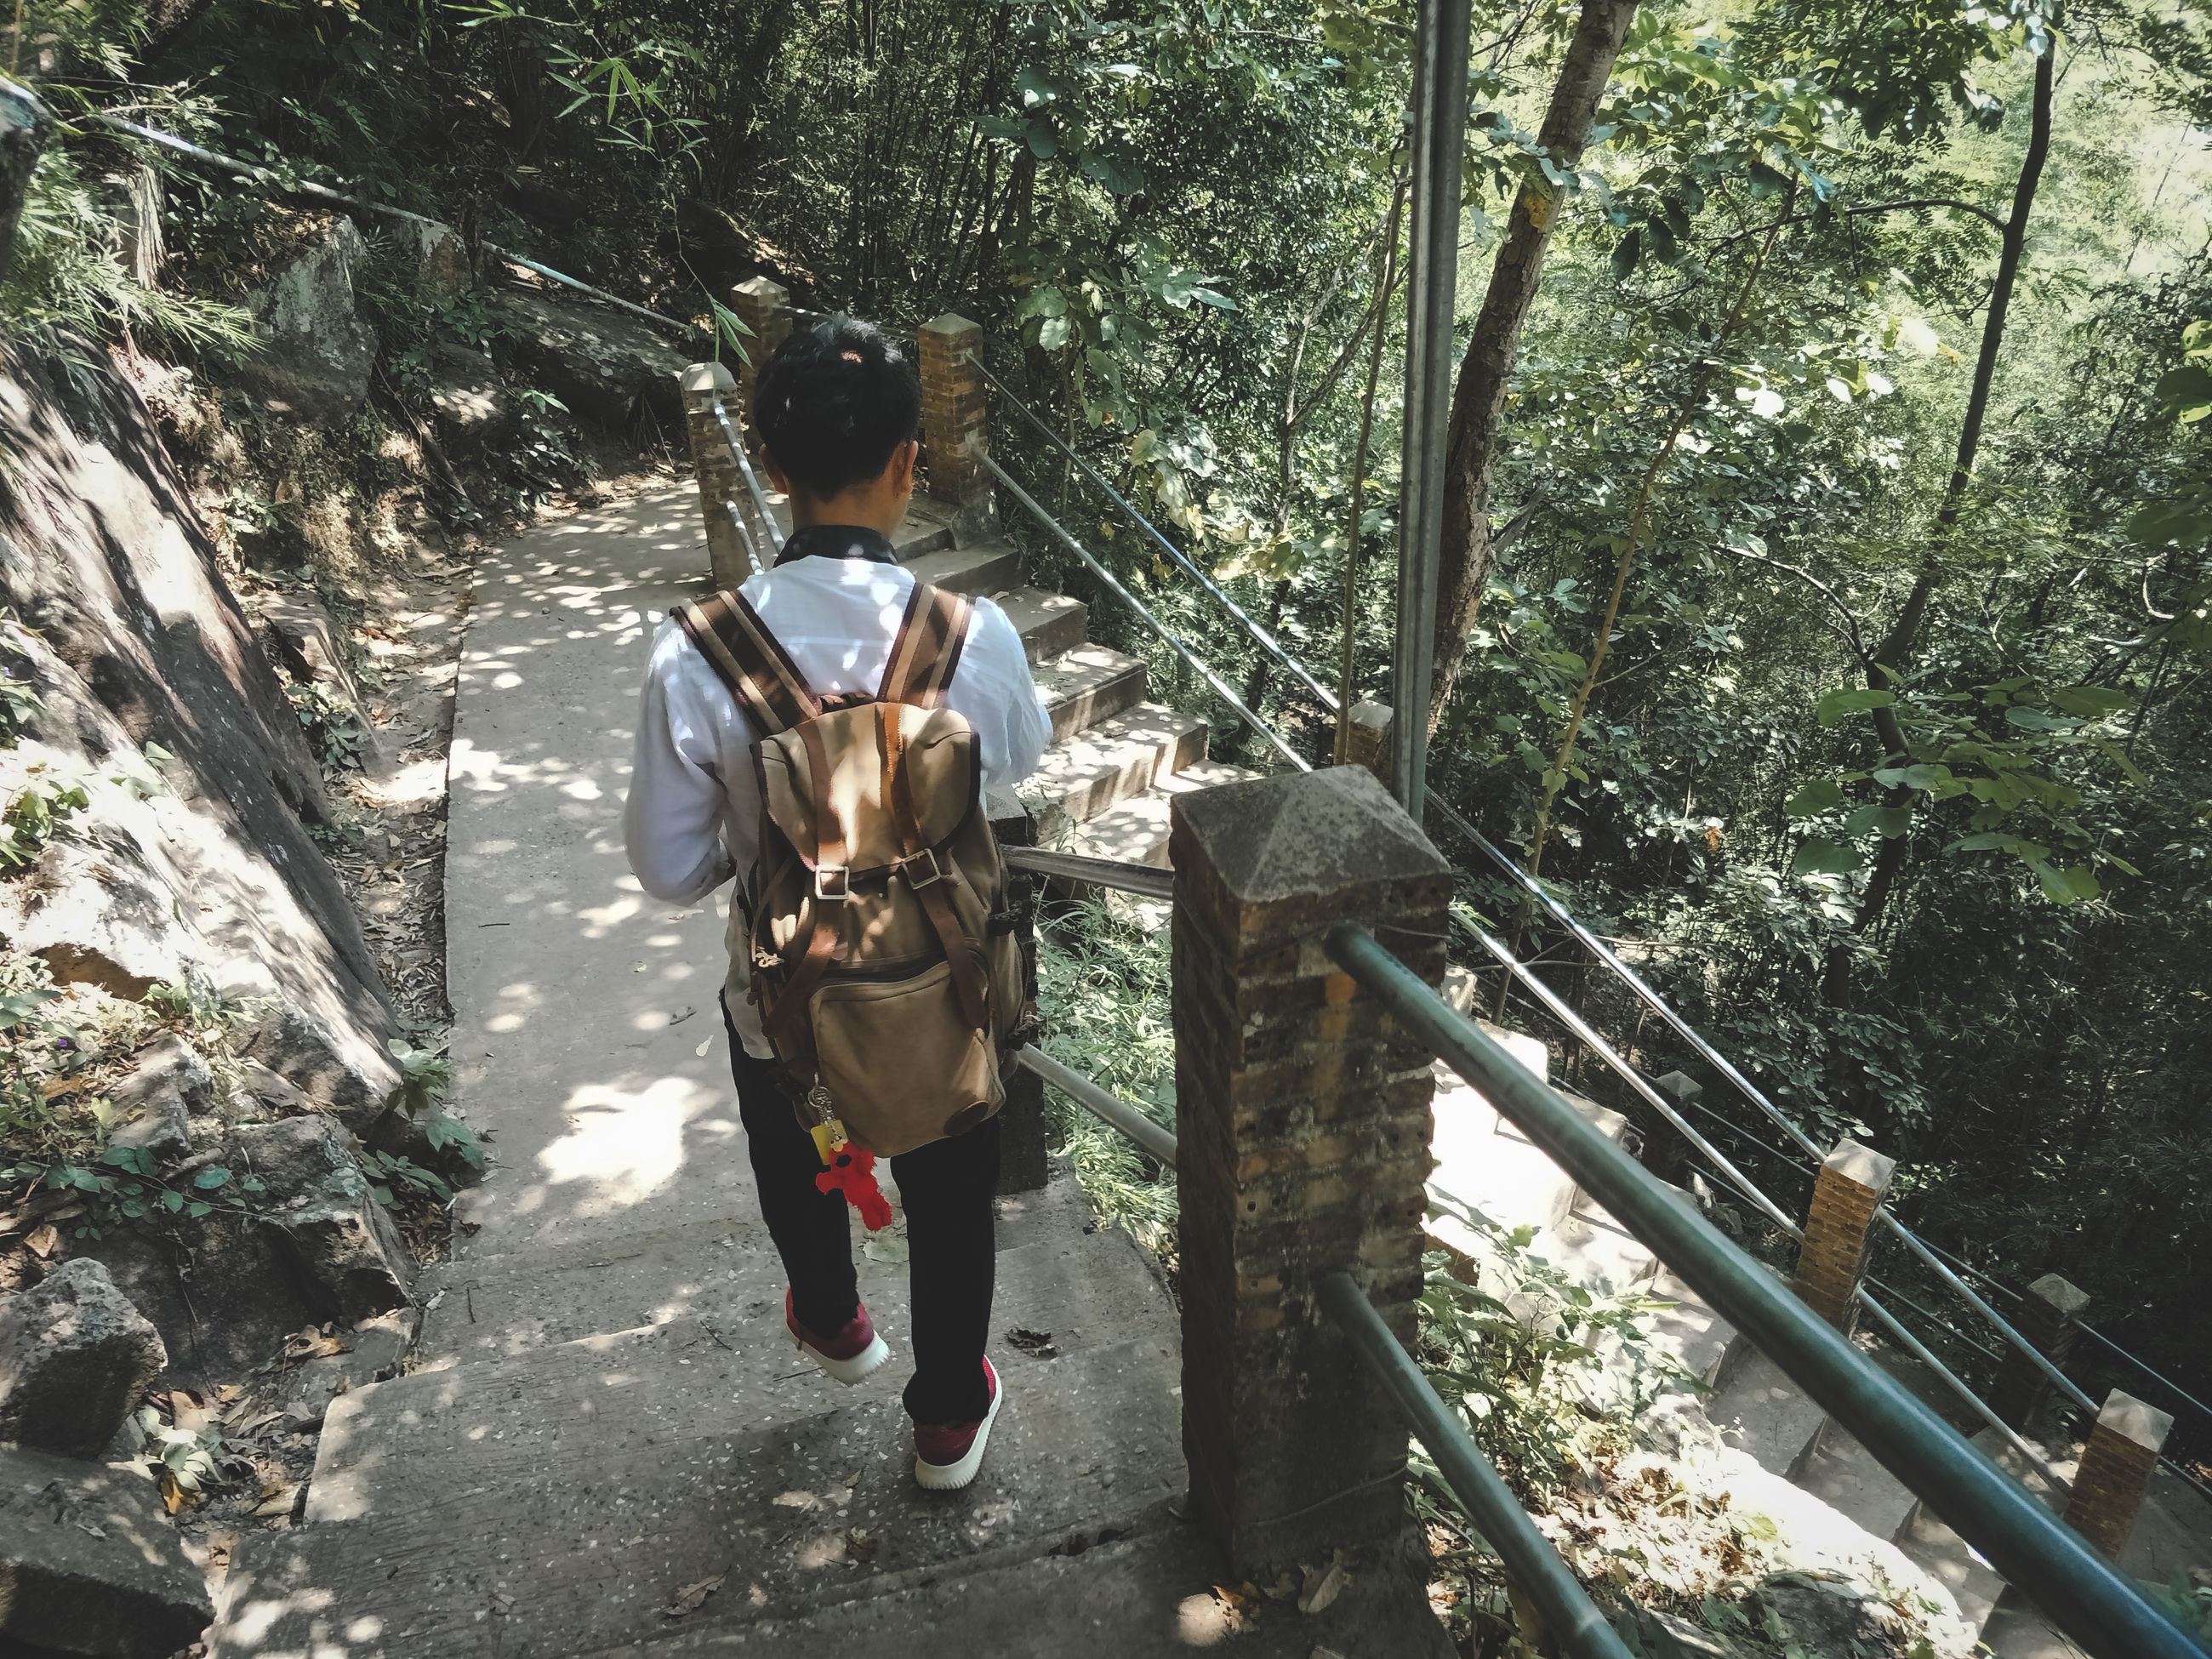 rear view, real people, one person, plant, nature, tree, full length, day, lifestyles, adventure, leisure activity, hiking, casual clothing, forest, mountain, walking, men, standing, beauty in nature, outdoors